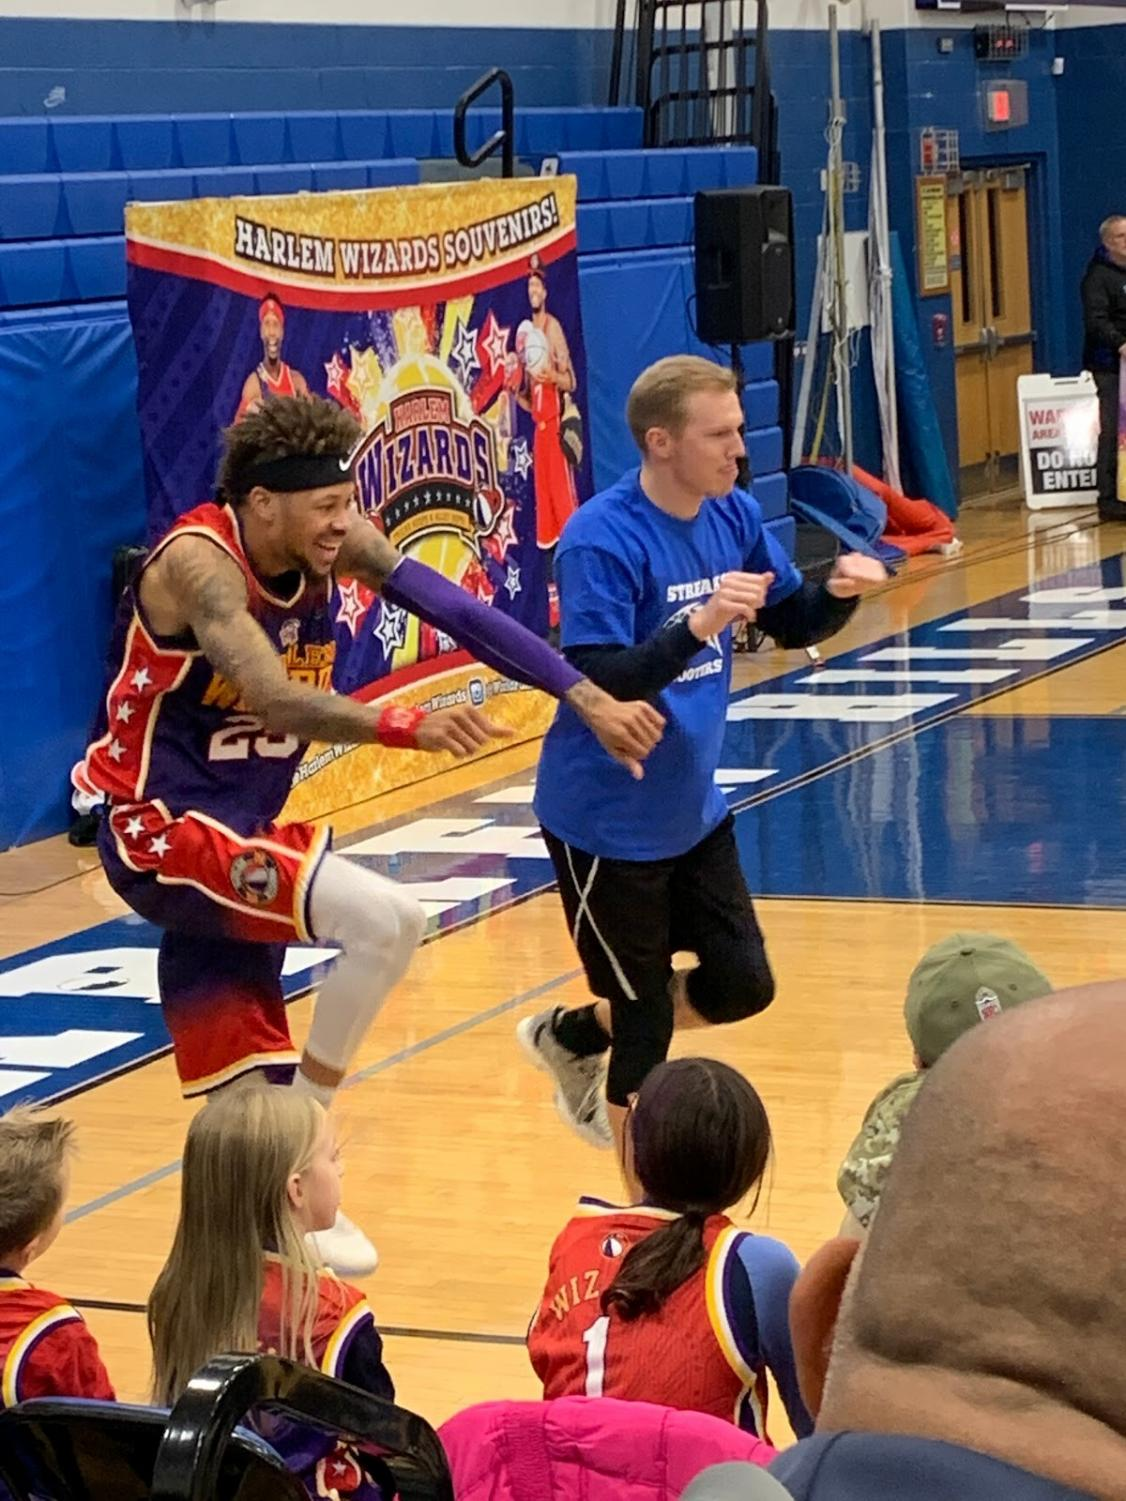 """Skywalker"" of the Harlem Wizards basketball team (left) tries out-dancing Warren Hills Varsity Basketball Coach Joseph Bamford at the high school gymnasium Dec. 7. The Warren Hills faculty took on the Wizards in a charity basketball game. The event, which was held to raise money for Project Graduation, featured basketball, dancing and other fun and games. ""It was a great way to bring the community together,"" said Sophomore Tyler Michalski, who participated in the event. (Photo by Jaedon Wolfrum)"